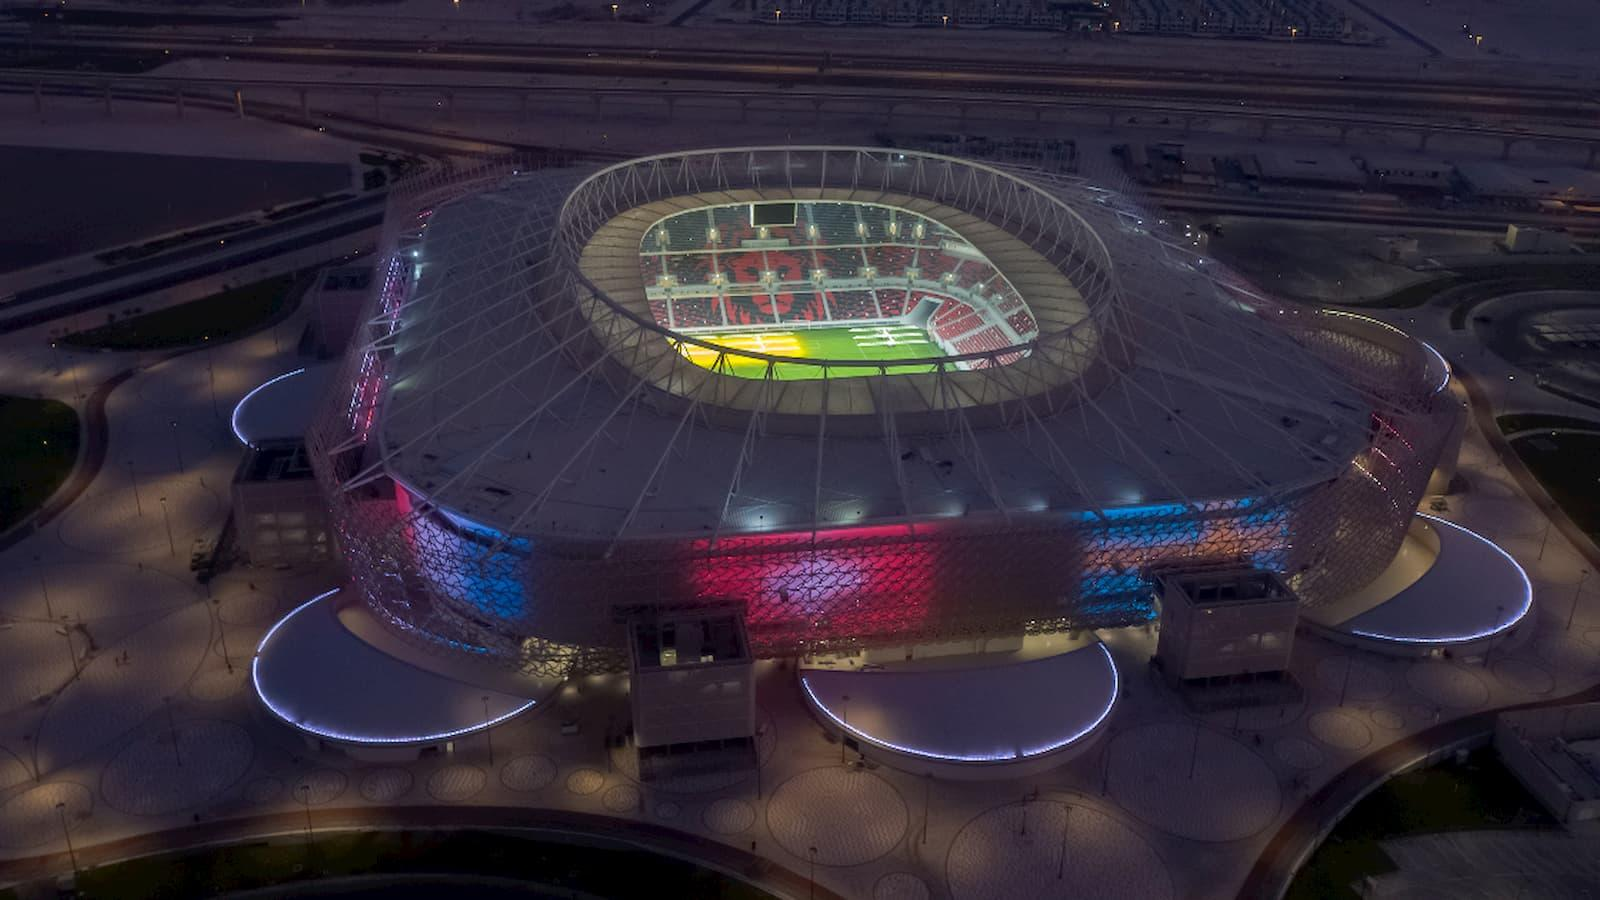 Ahmad Bin Ali, Education City stadiums nominated for 2020 Stadium of the Year Award